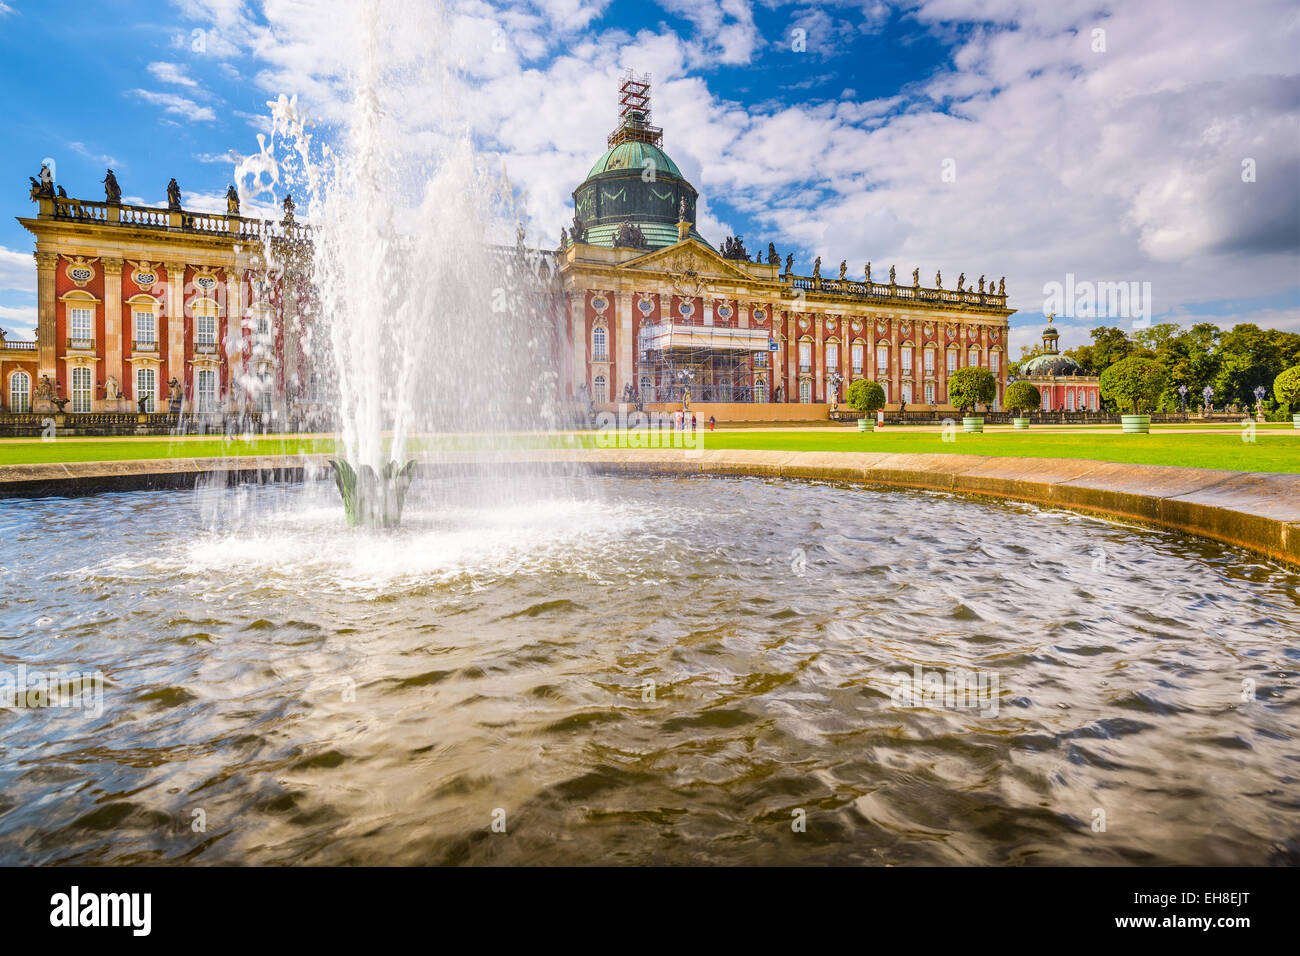 The New Palace 'Neues Palais' in Potsdam, Germany. - Stock Image